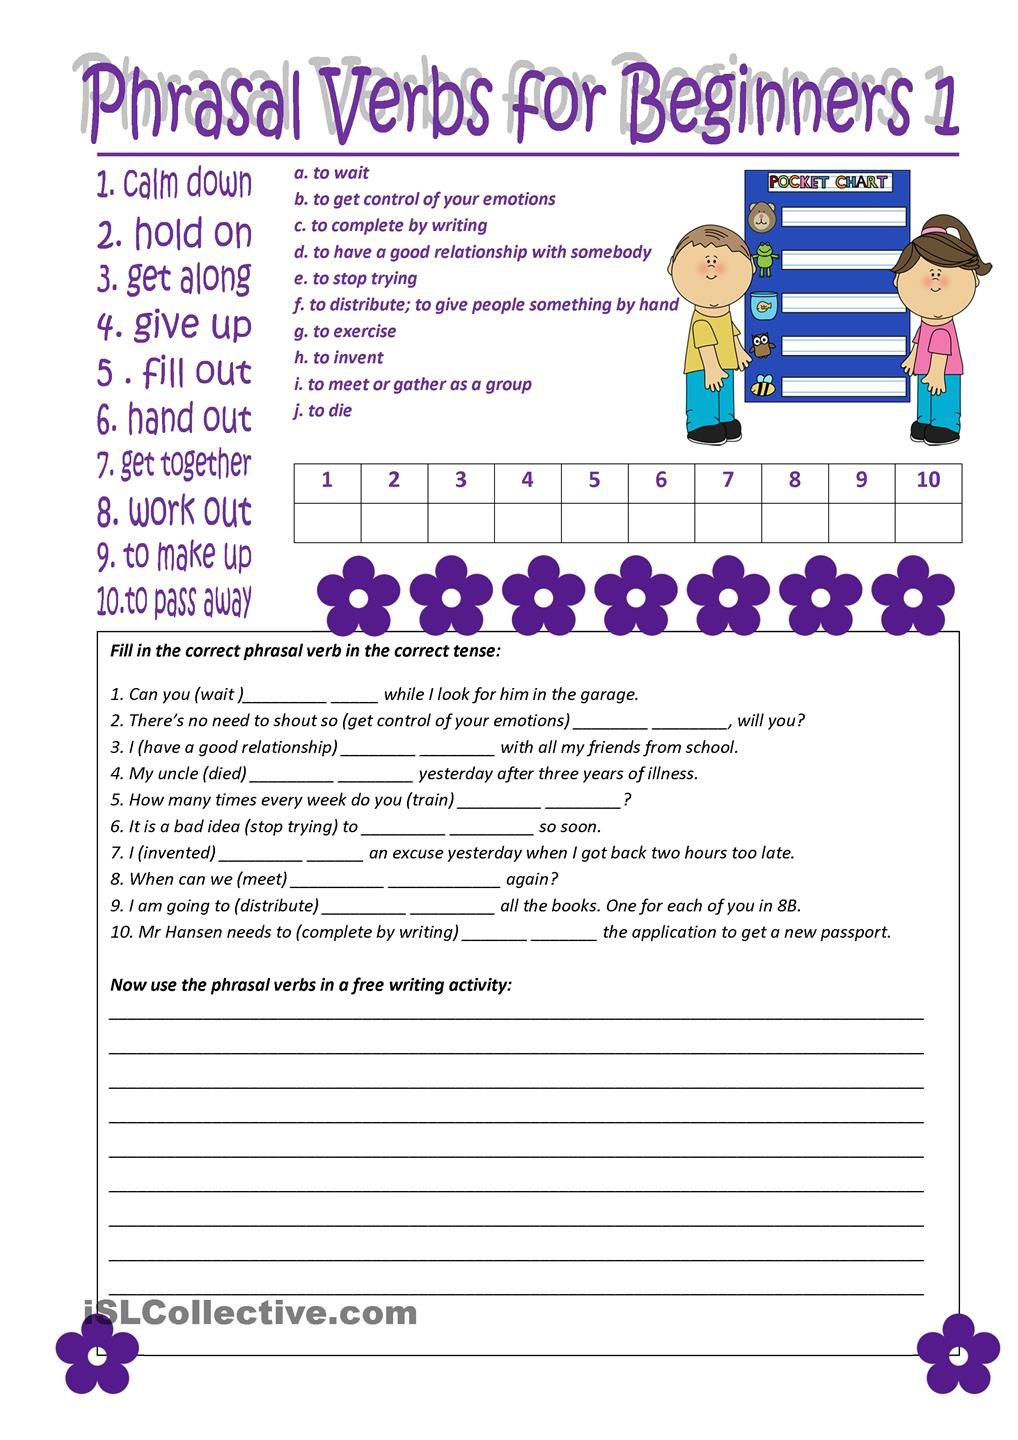 small resolution of Phrasal Verbs for Beginners 1   Verb worksheets